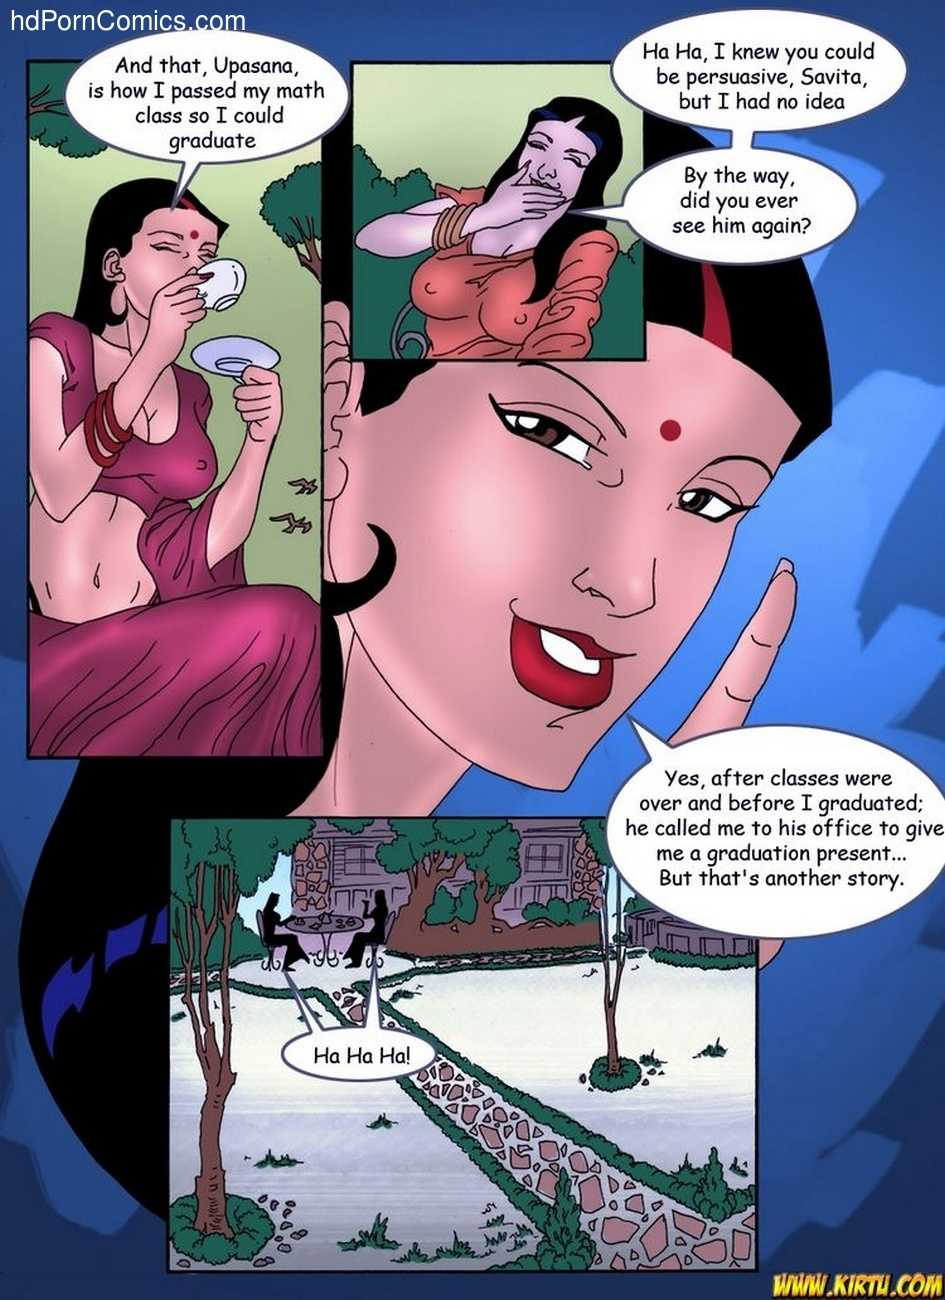 Savita Bhabhi 13 – College Girl Savvi Sex Comic